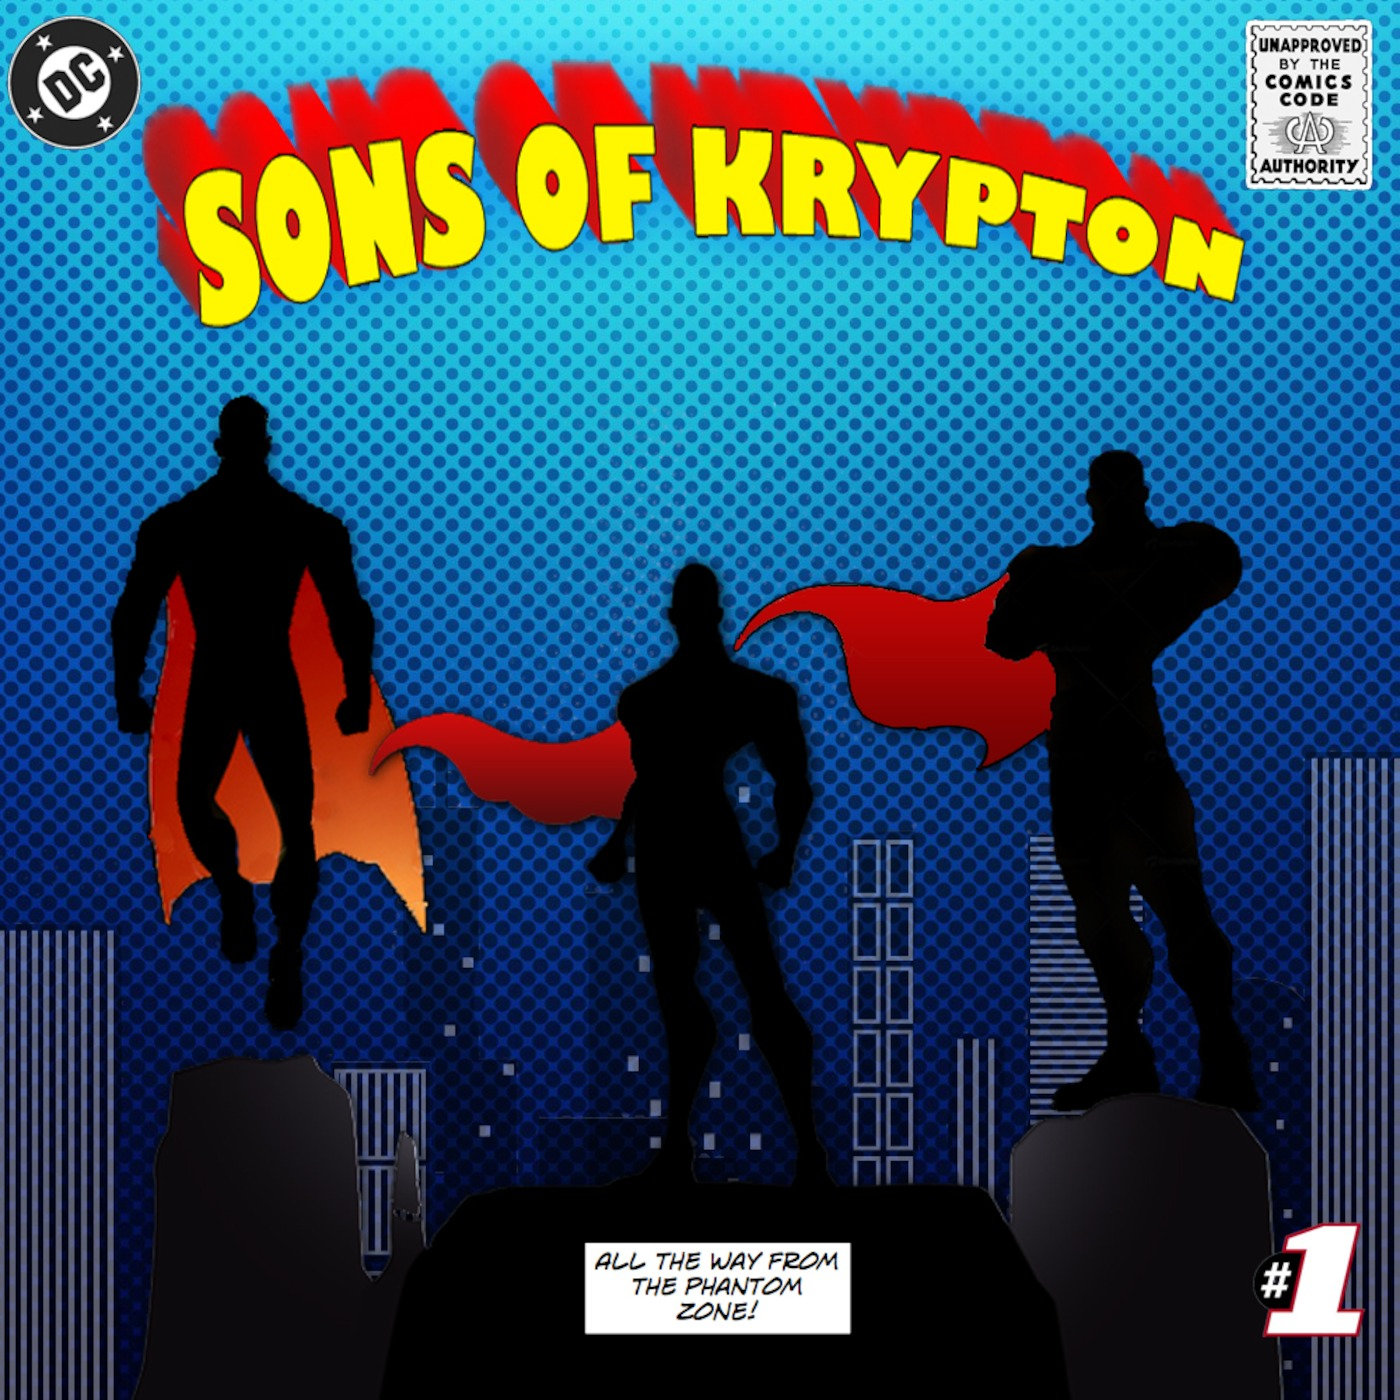 Sons of Krypton